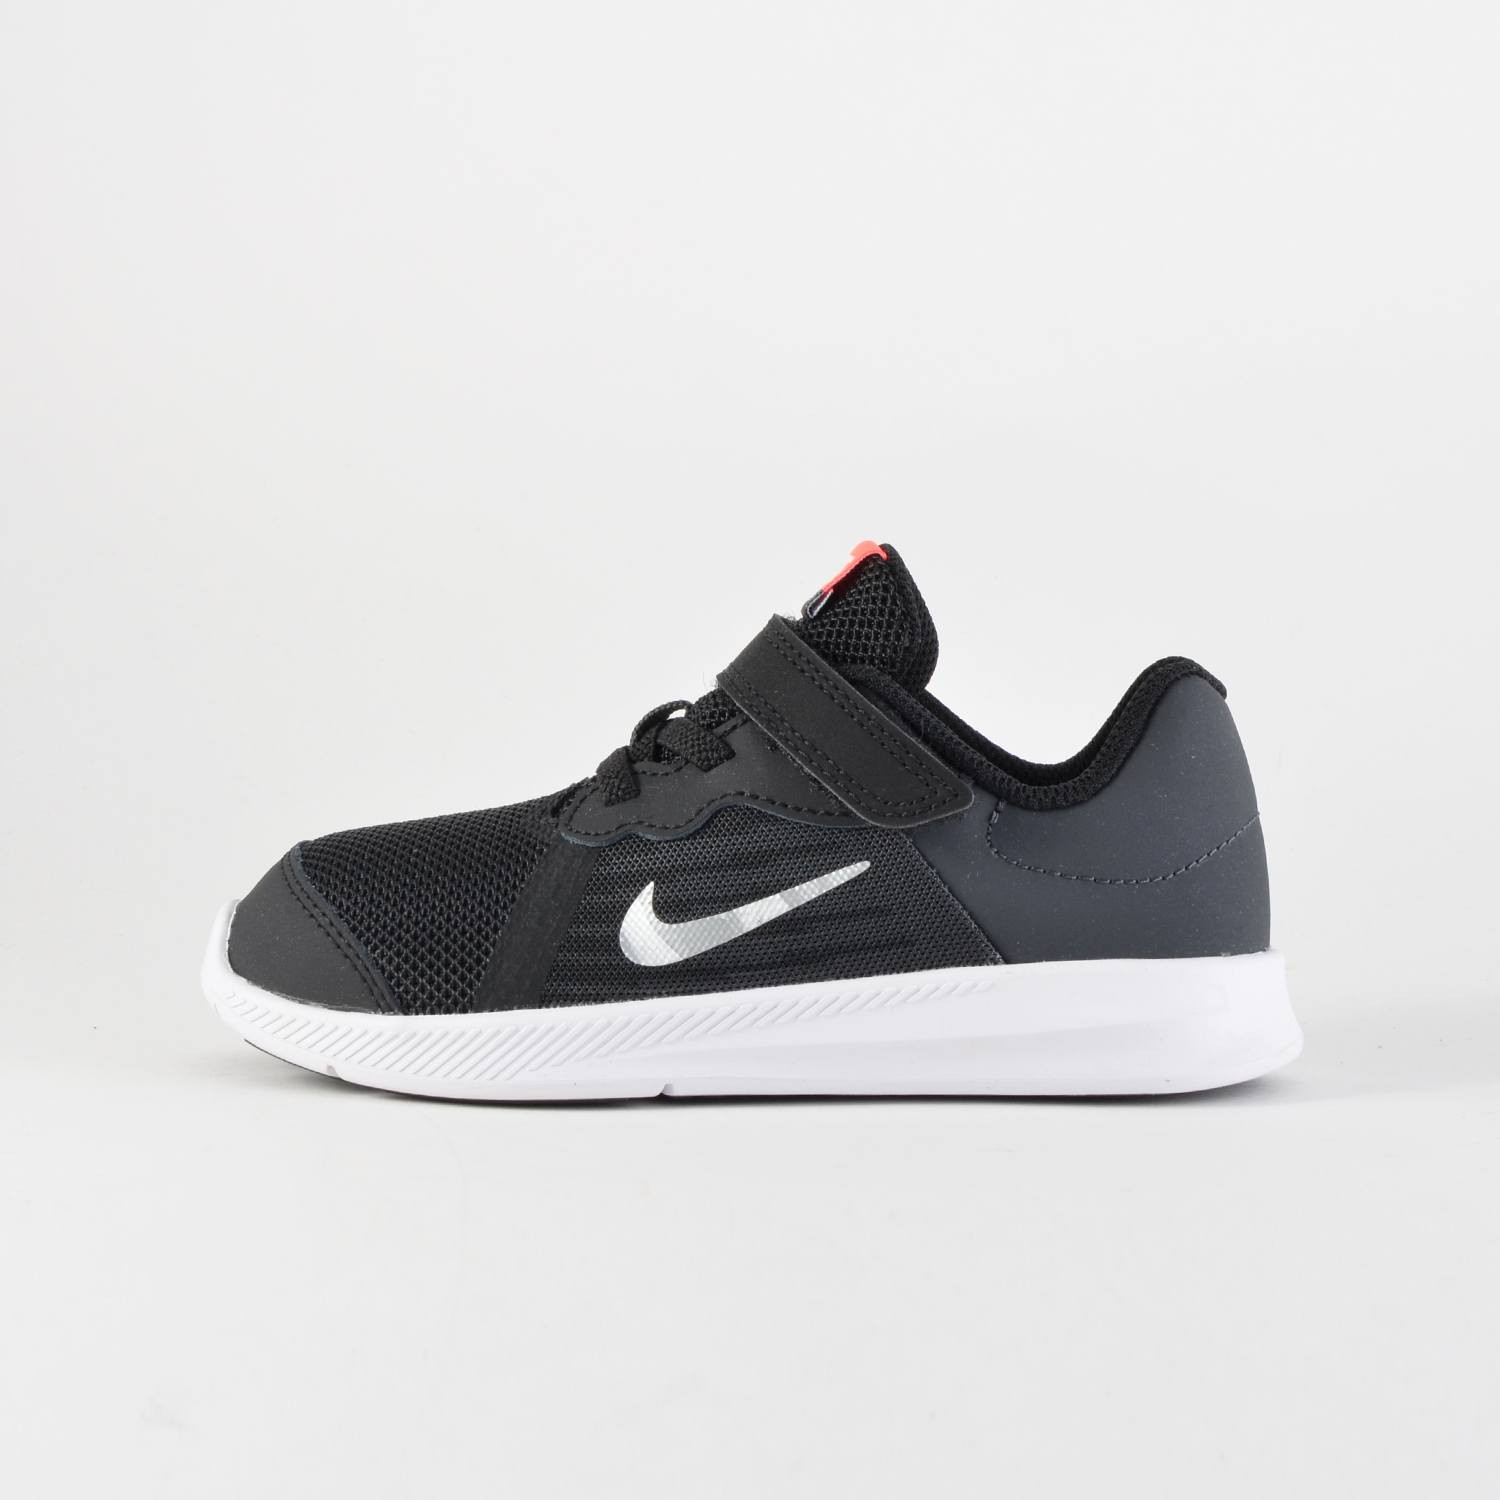 Nike Downshifter 8 Infant's Shoe (9000014760_20354)